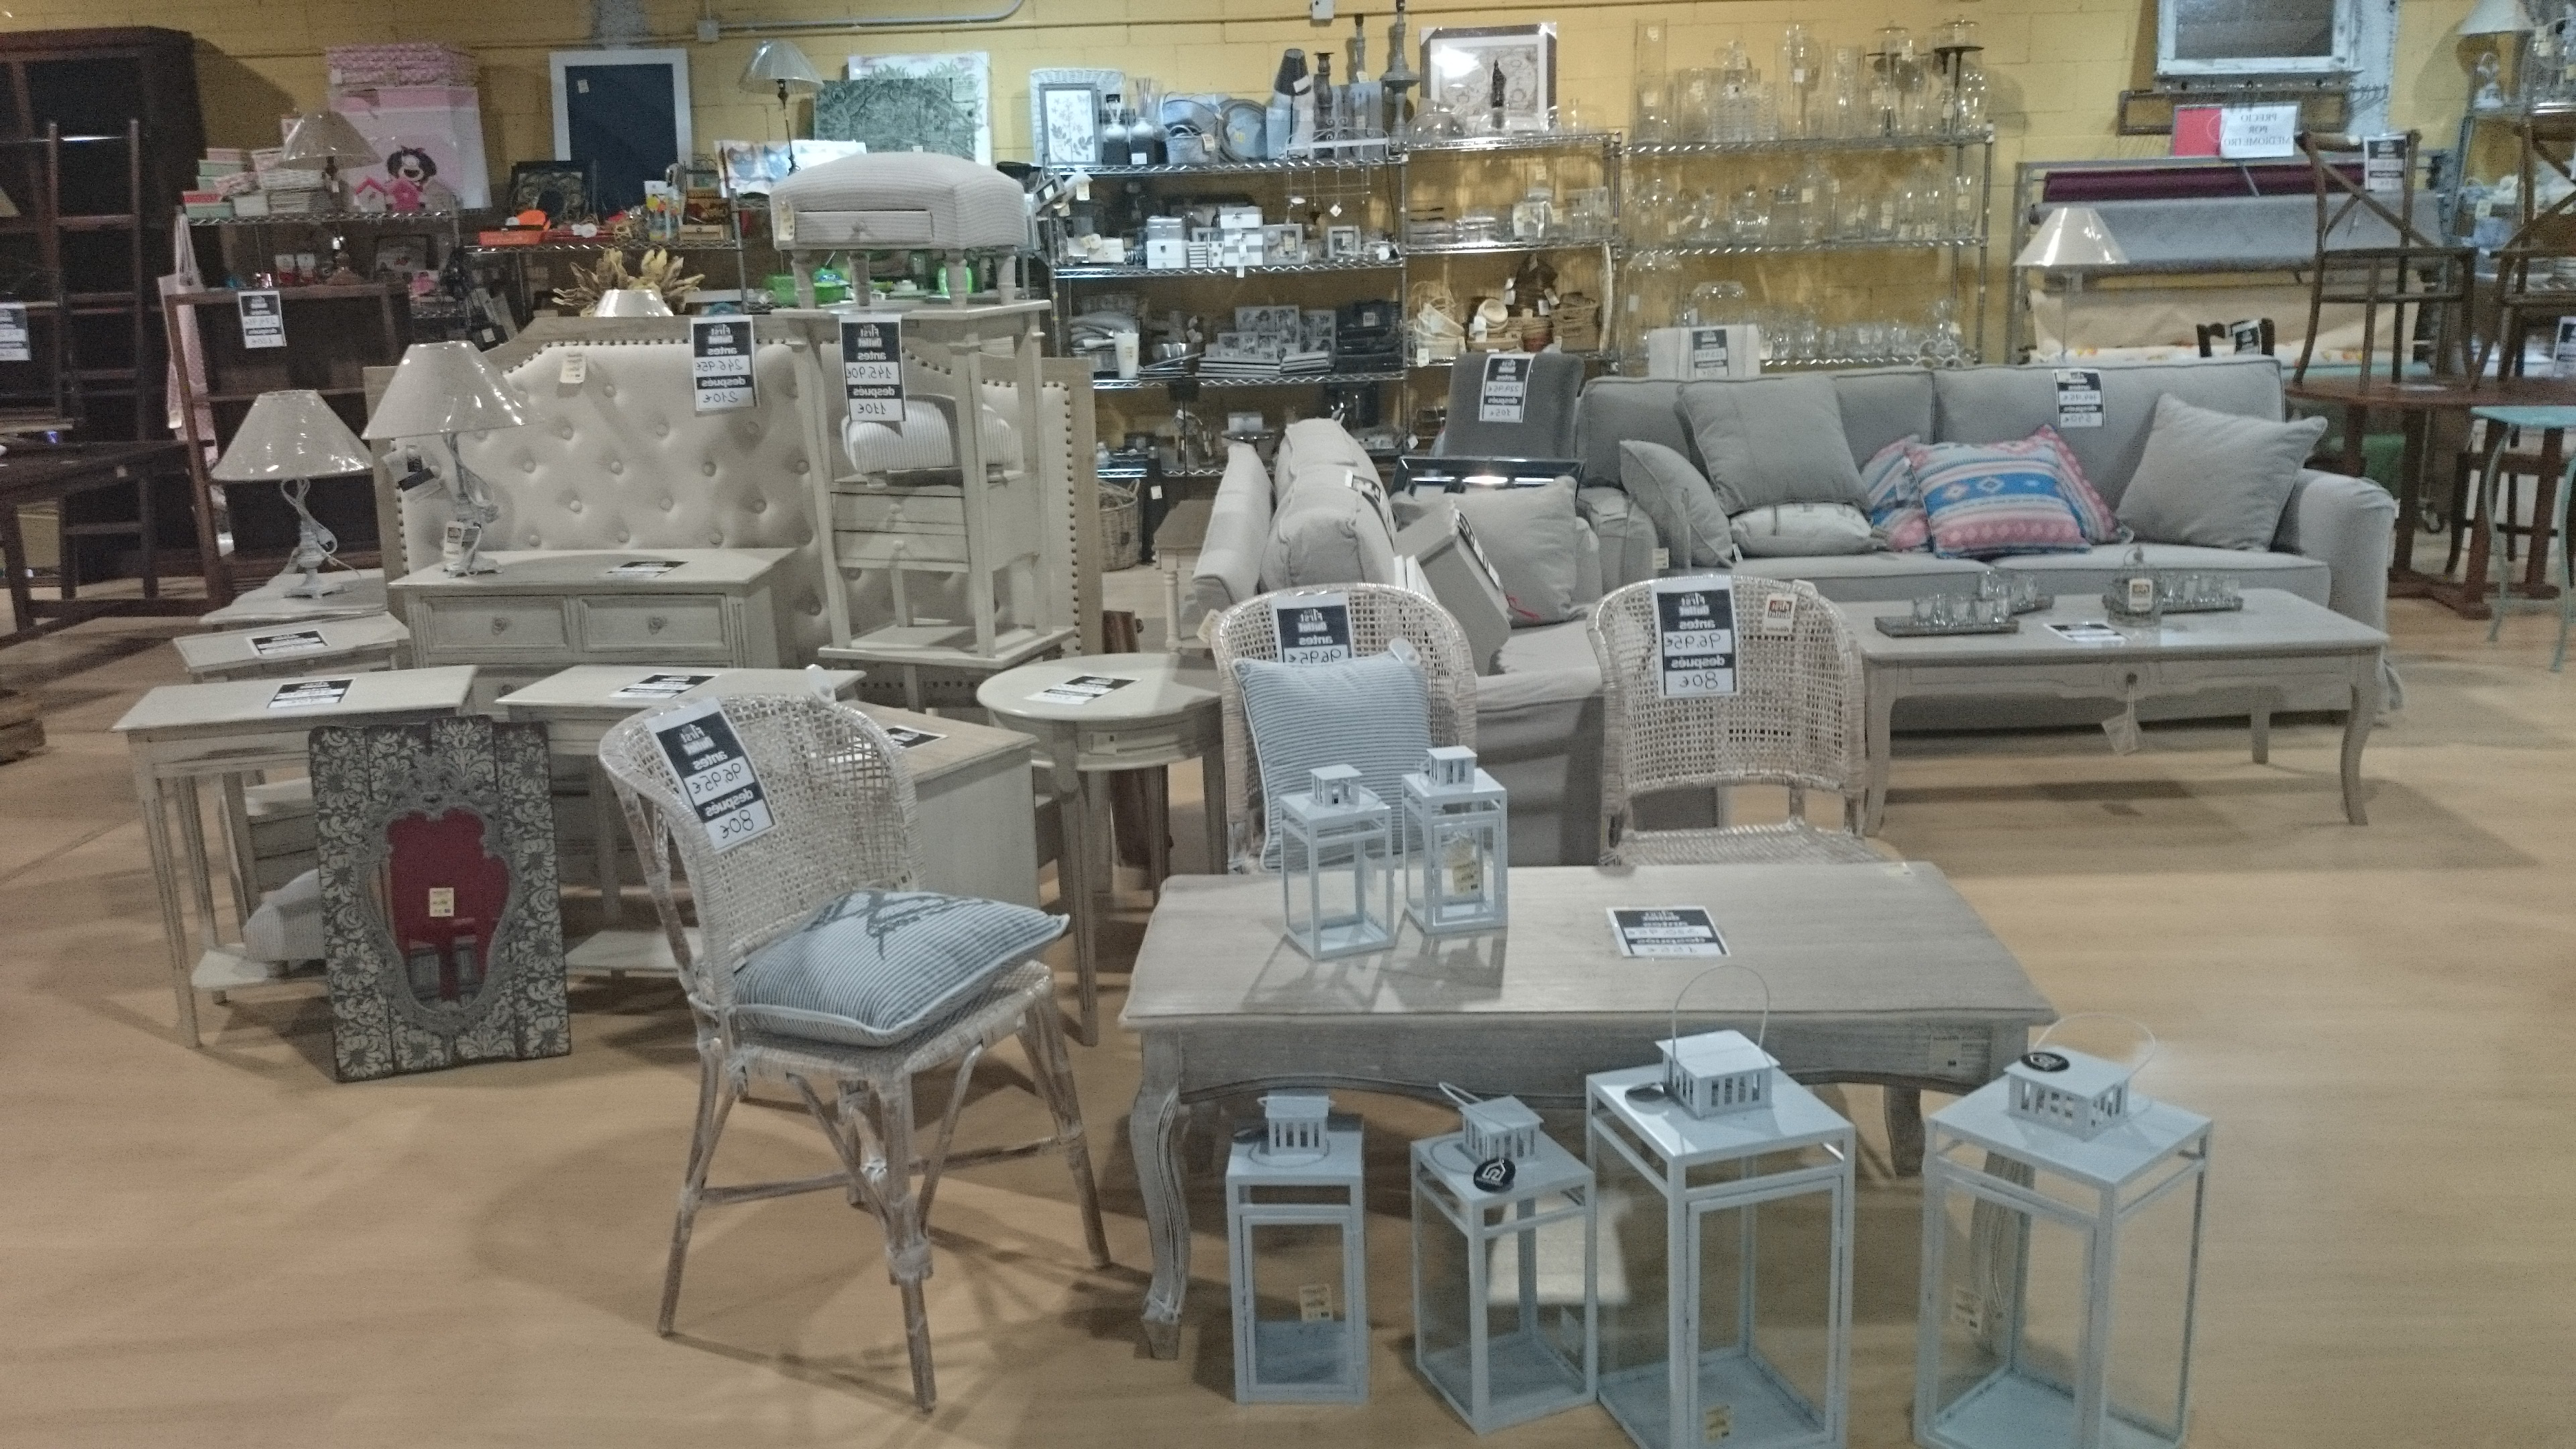 Muebles Online Rebajas Bqdd Feria Del Mueble the First Outlet the First